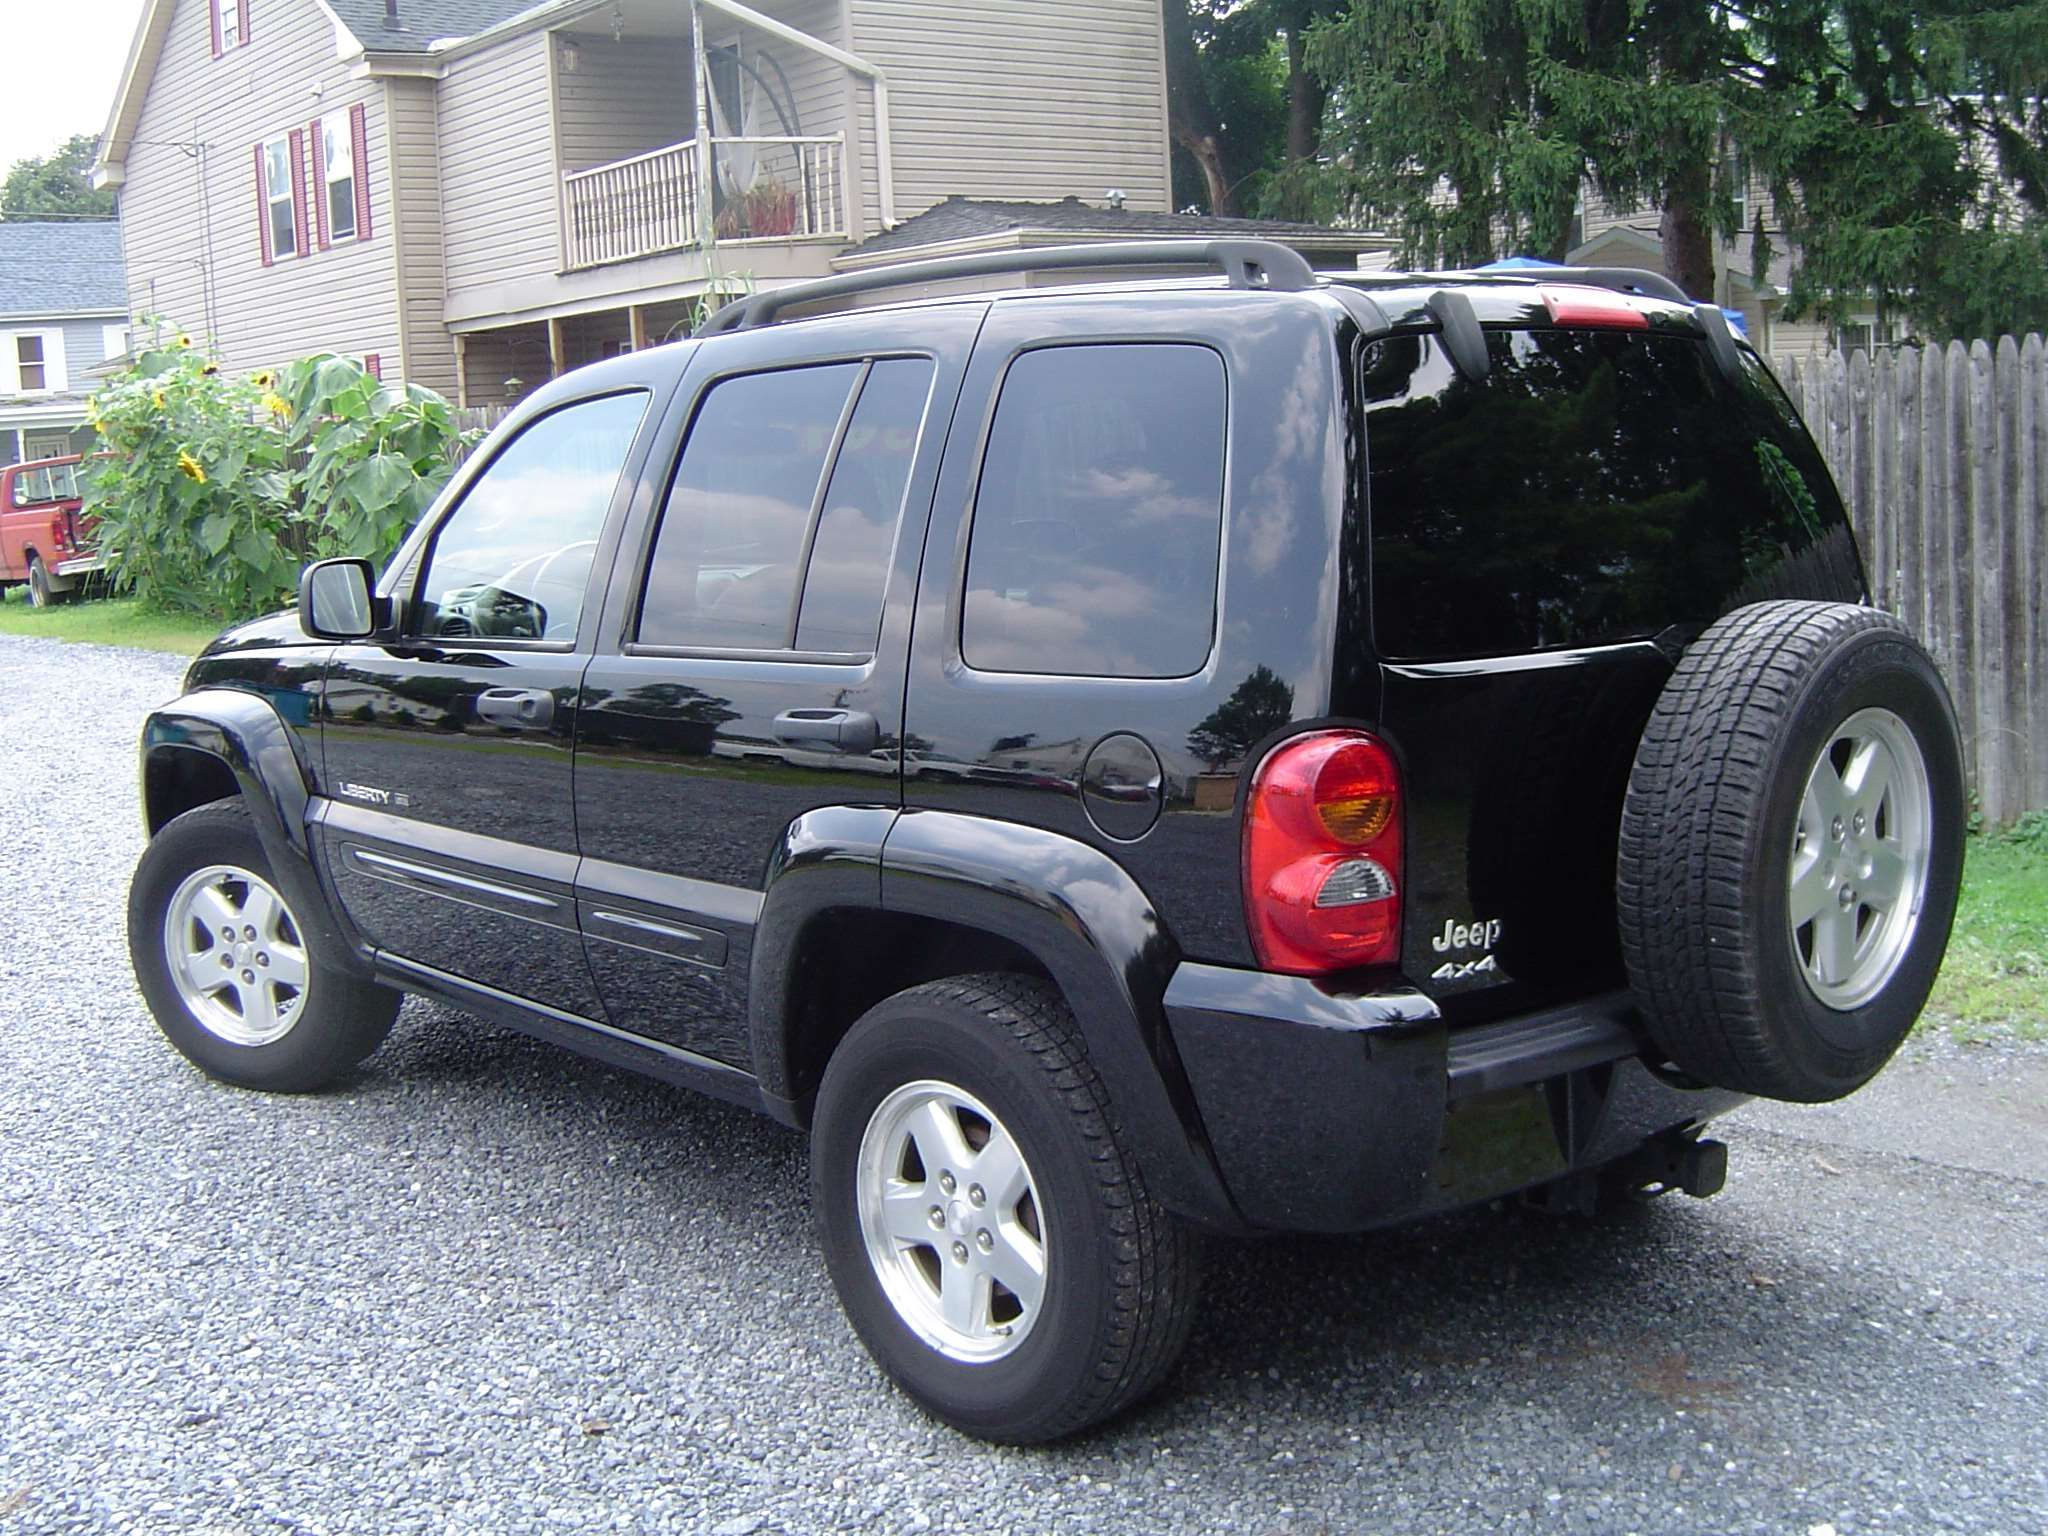 Volvo Of Danbury >> Pin by UNITED CAR EXCHANGE on 2002 Jeep Liberty | Jeep, Jeep liberty, Cars